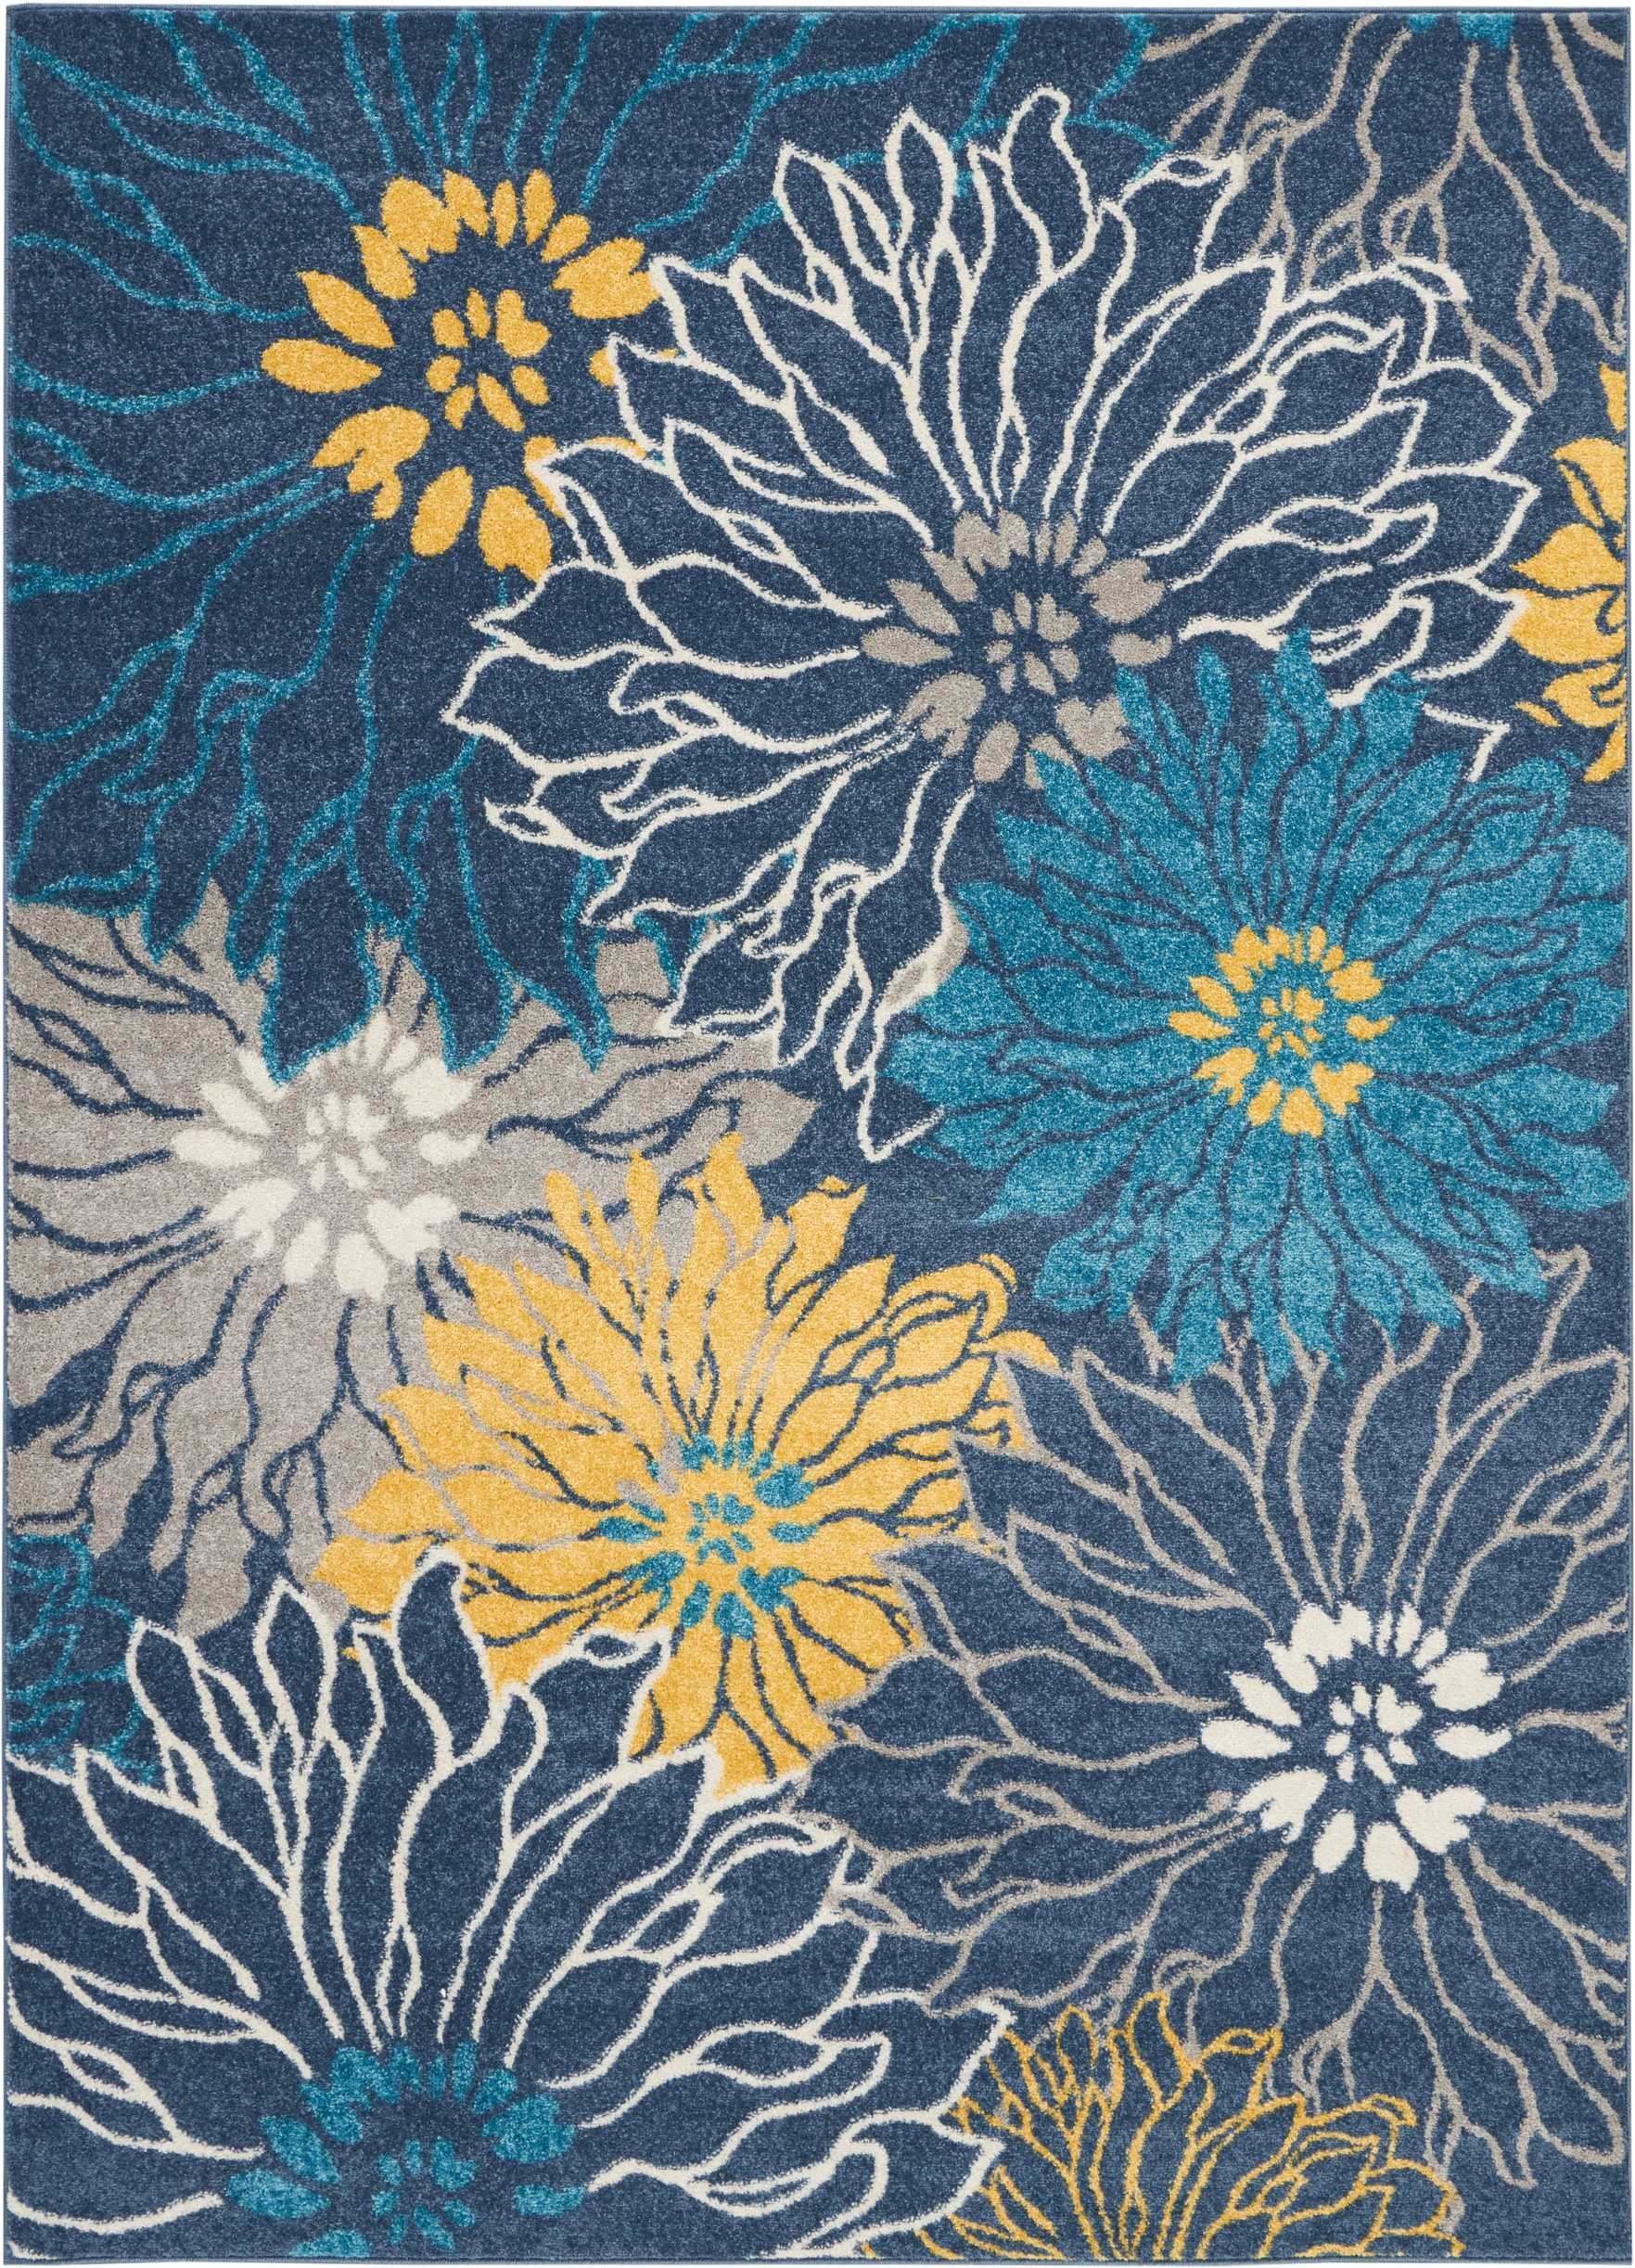 """Nourison  Passion Area Rug, 5'3"""" x7'3, BLUE - SOFT TO THE TOUCH: .5"""" pile height and polypropylene fibers are inviting underfoot STAIN RESISTANT, FADE RESISTANT:  No shedding and easy to clean MODERN, FLORAL STYLE: Colorful, bold, borderless design - living-room-soft-furnishings, living-room, area-rugs - A1GDvEy7s9L -"""